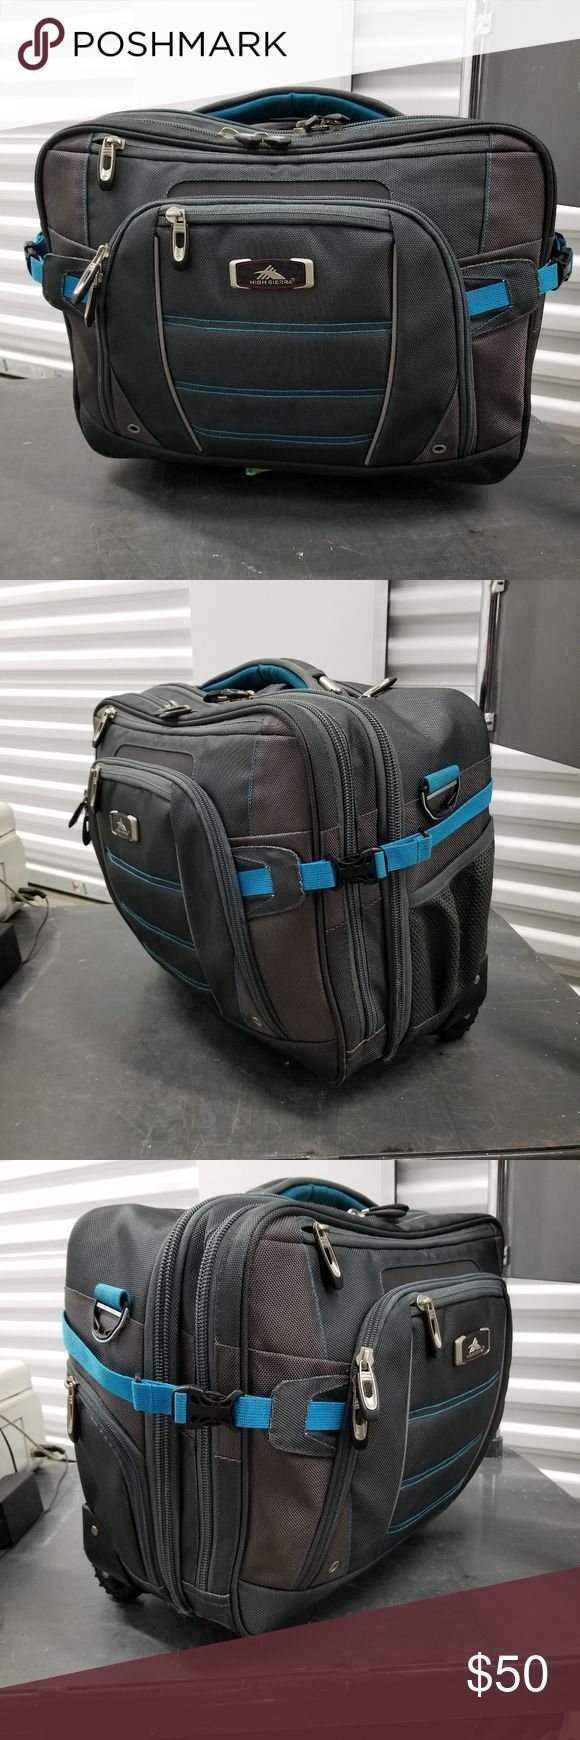 NWOT High Sierra Rolling Briefcase NWOT High Sierra Rolling Briefcase Travel Bag. Brand new, never used. Great professional looking briefcase, has wheels and telescoping handle. Will come with an over the shoulder strap. Stain on shoulder strap. Small mark on the back of the bag. Compression side straps, deluxe organizer, multiple large compartments. Check out my other listings for sale, I've got a ton. bundle and save!  *All earnings will go to the victims of hurricane Maria in PR* High…